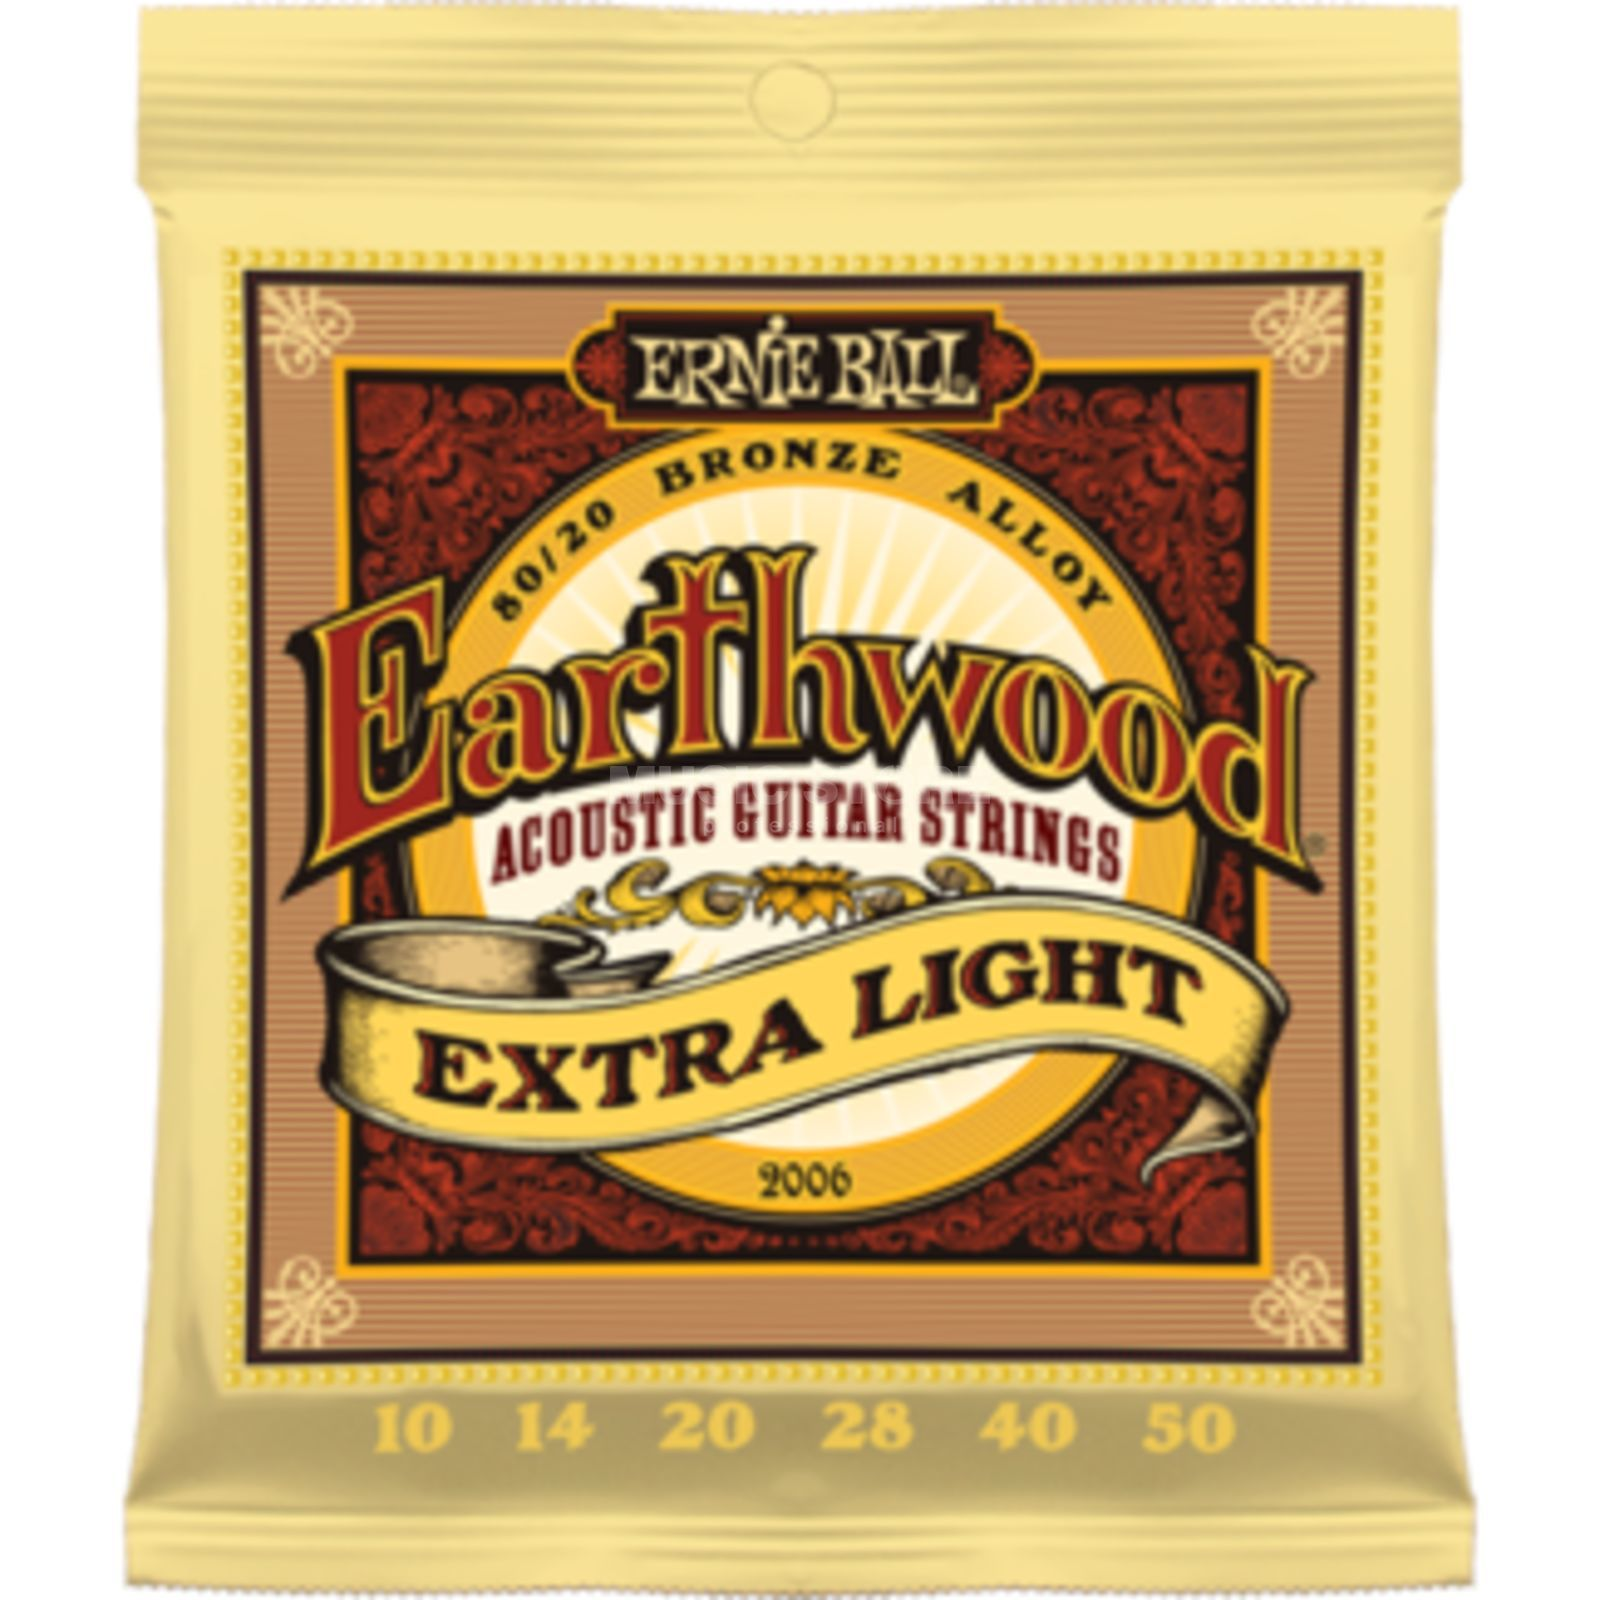 Ernie Ball A-Guit.Strings Earthwood 10-50 Bronze, EB2006 Produktbillede